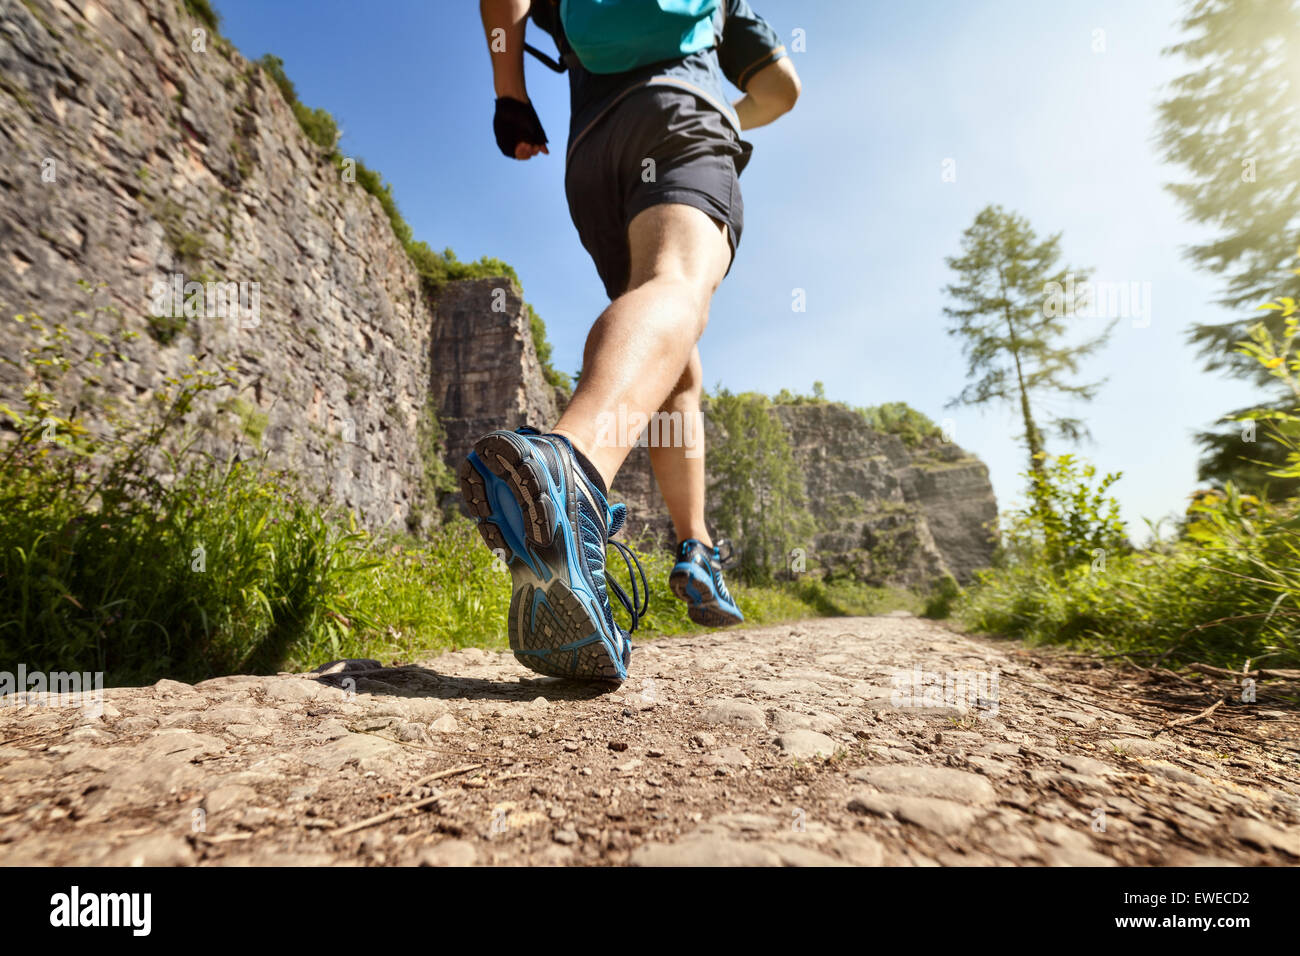 Healthy trail run - Stock Image